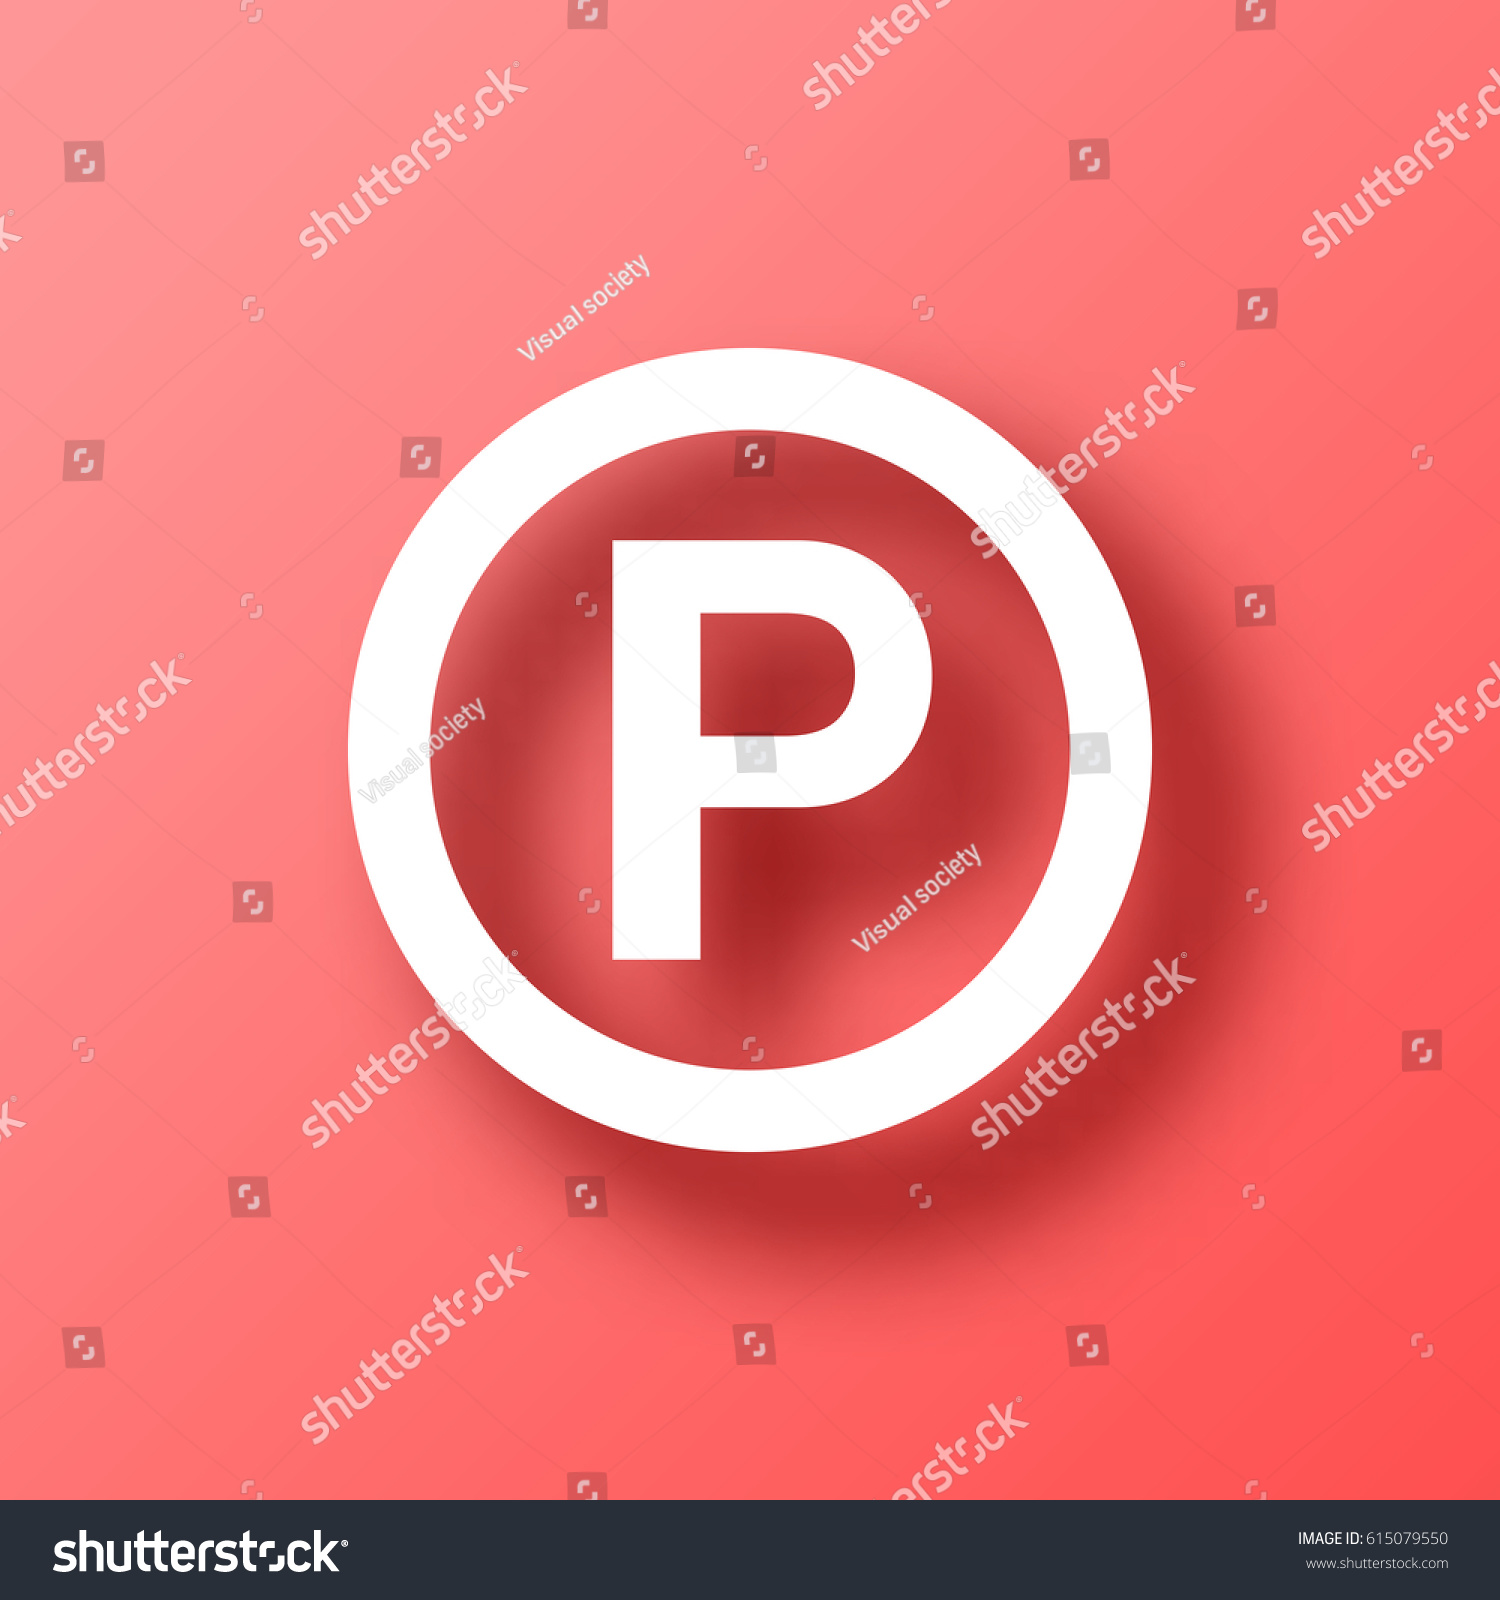 P sound recording copyright symbol on stock vector 615079550 p sound recording copyright symbol on red background with shadow vector illustration easy biocorpaavc